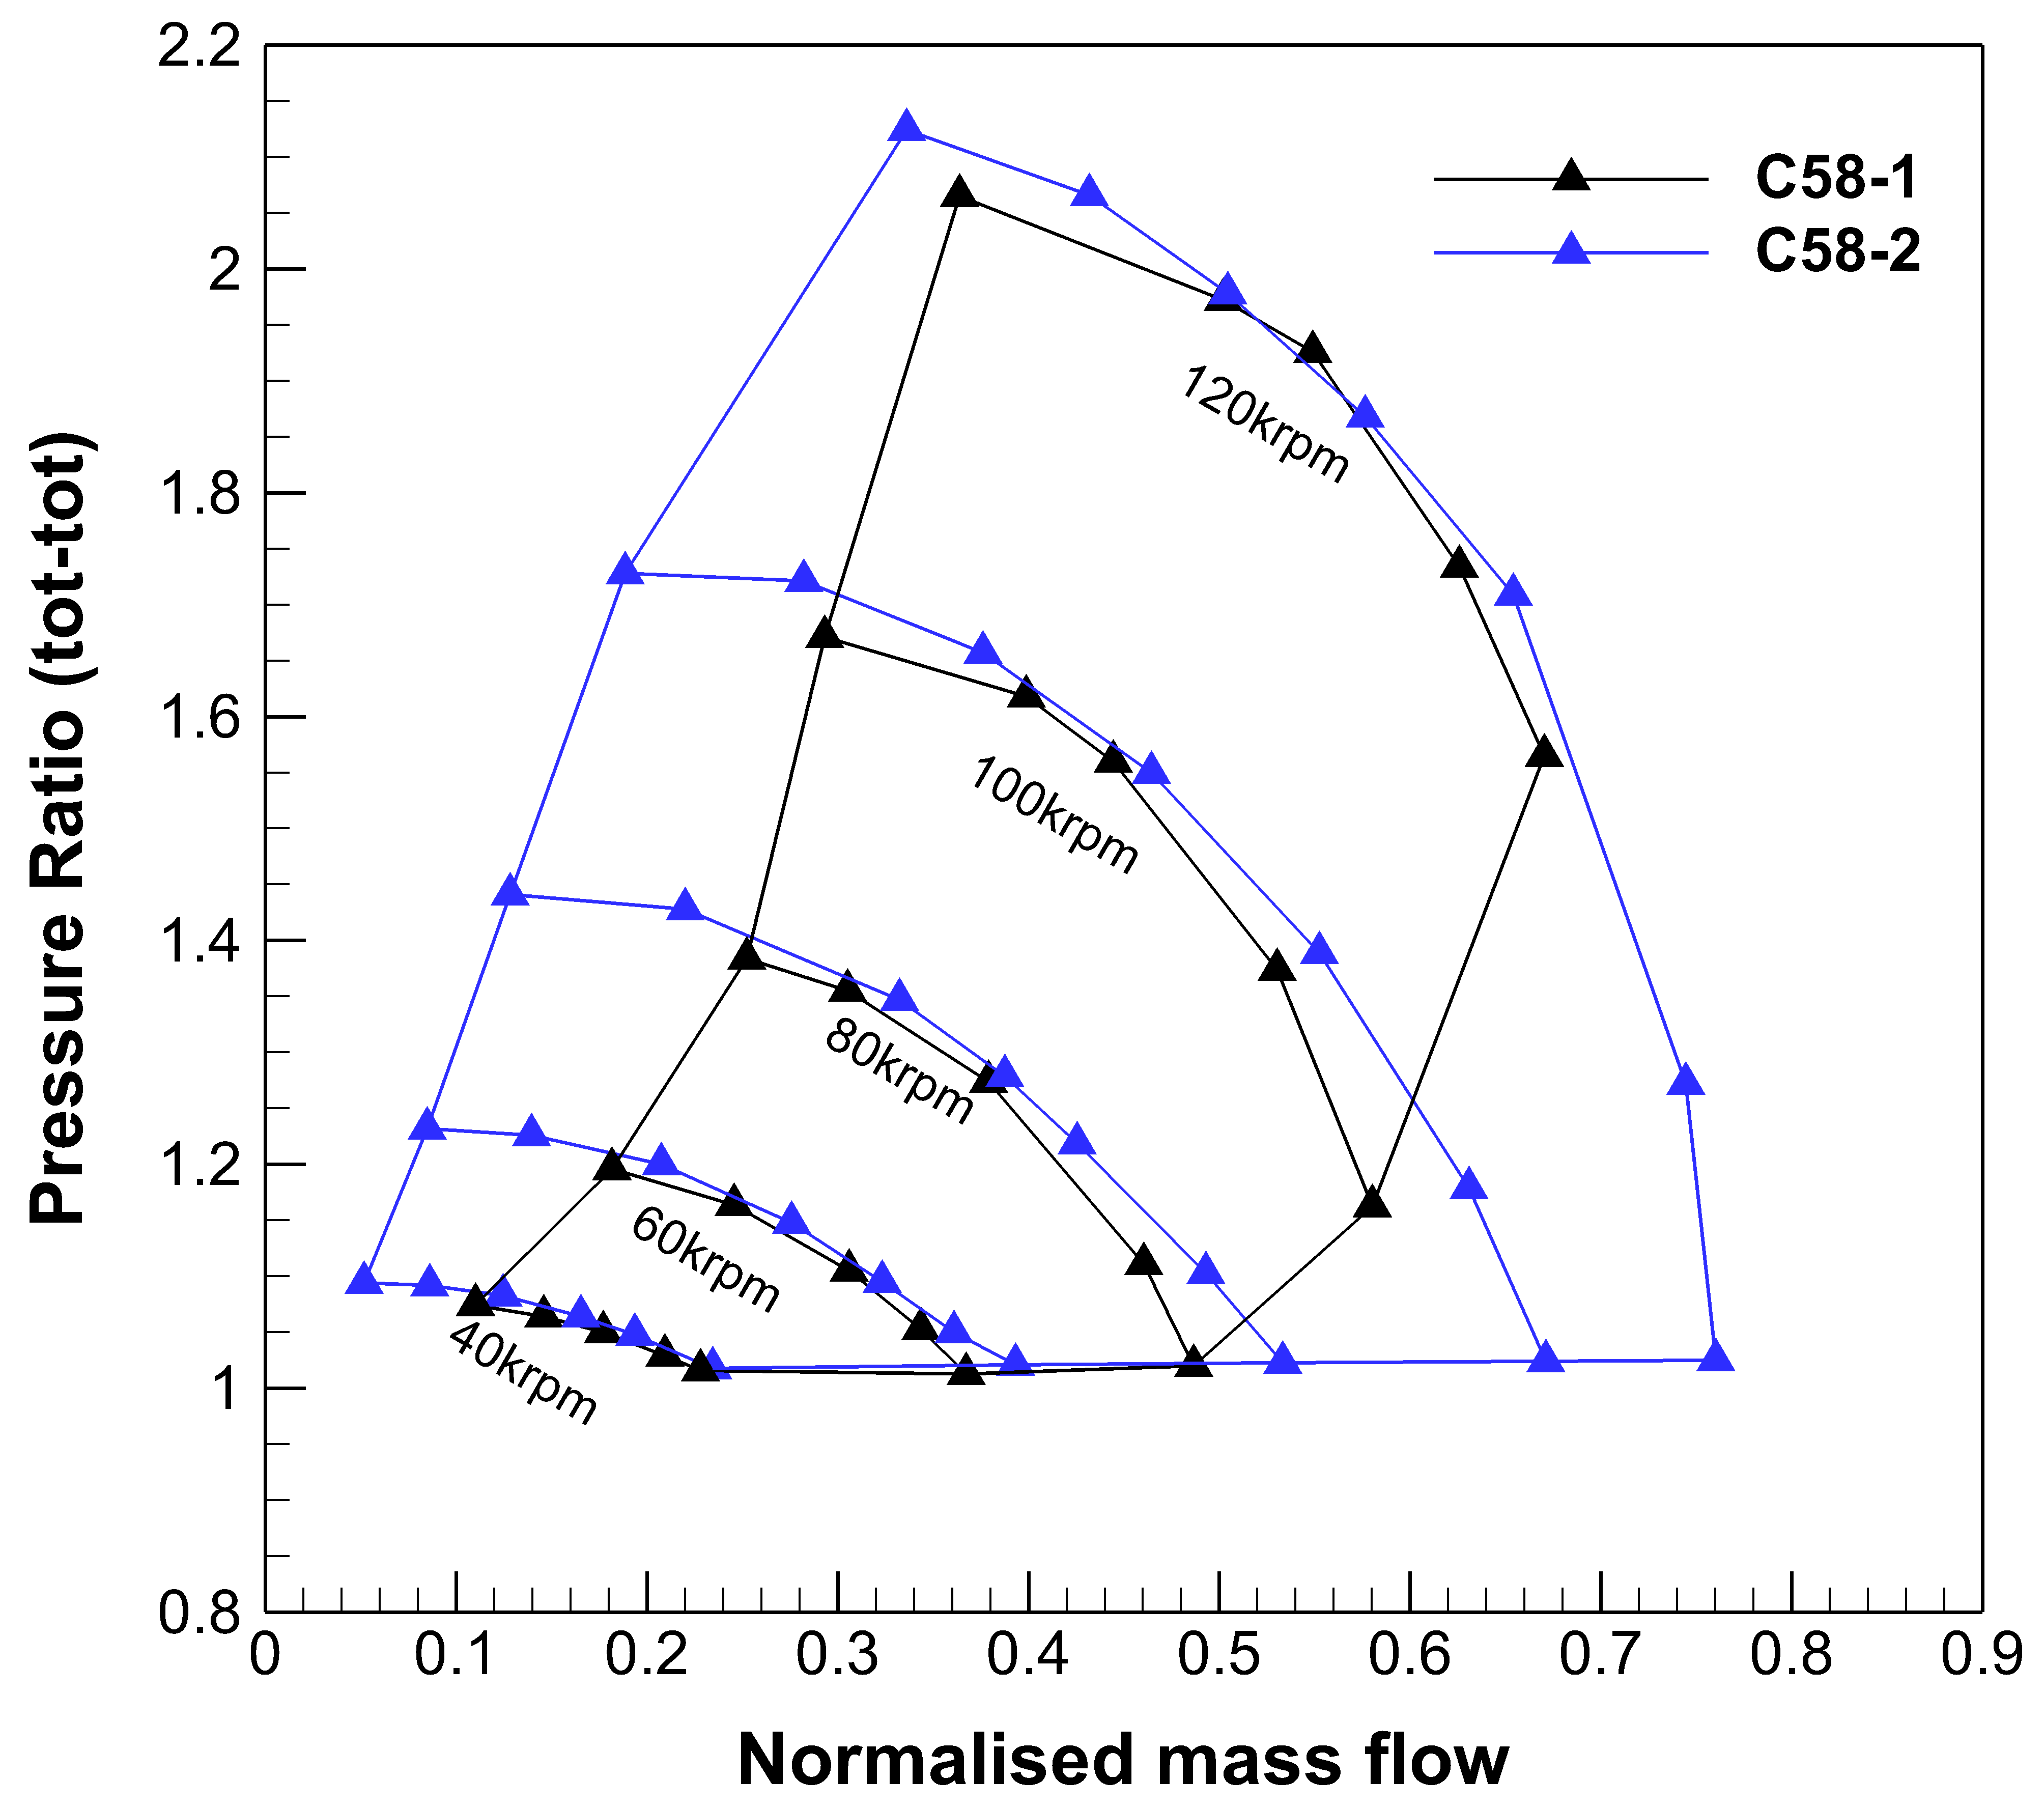 C58-1-VS-2-Test-PR-normalised.png